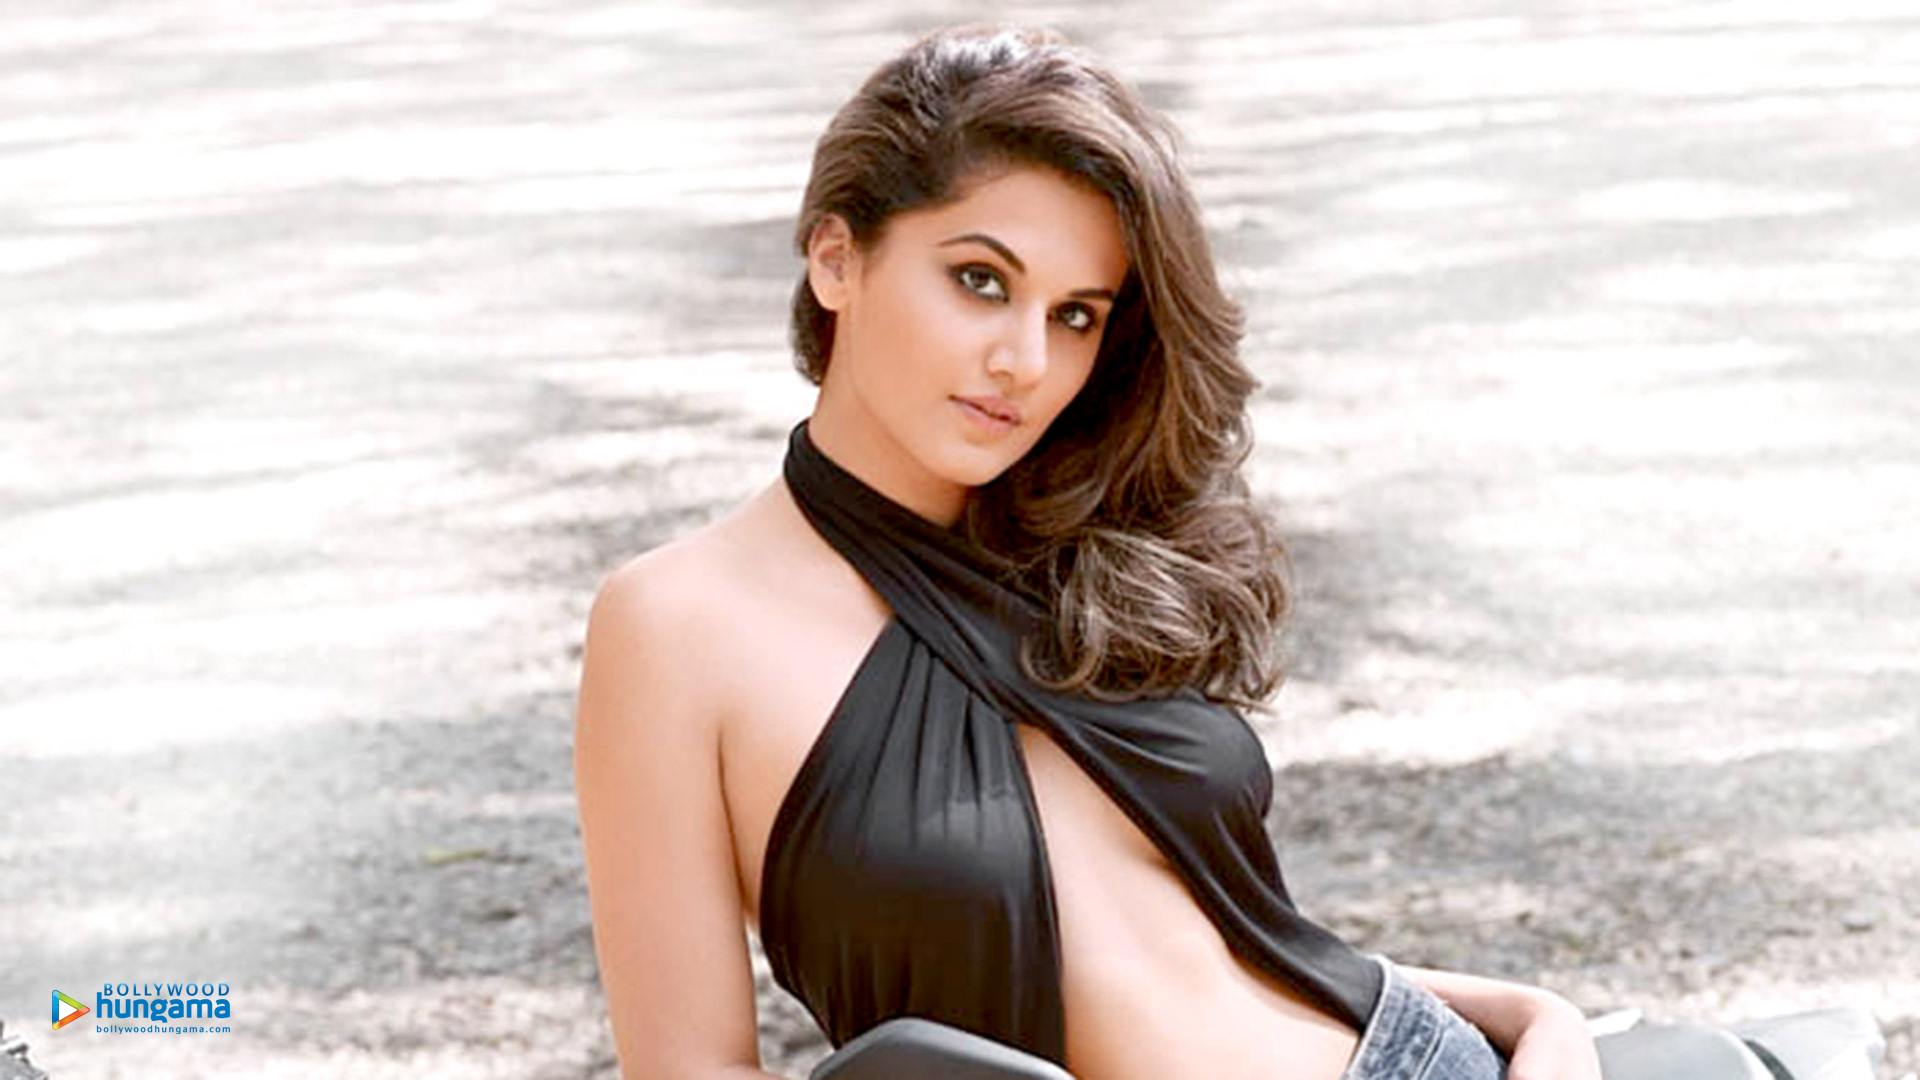 1920x1080 - Tapsee pannu Wallpapers 6